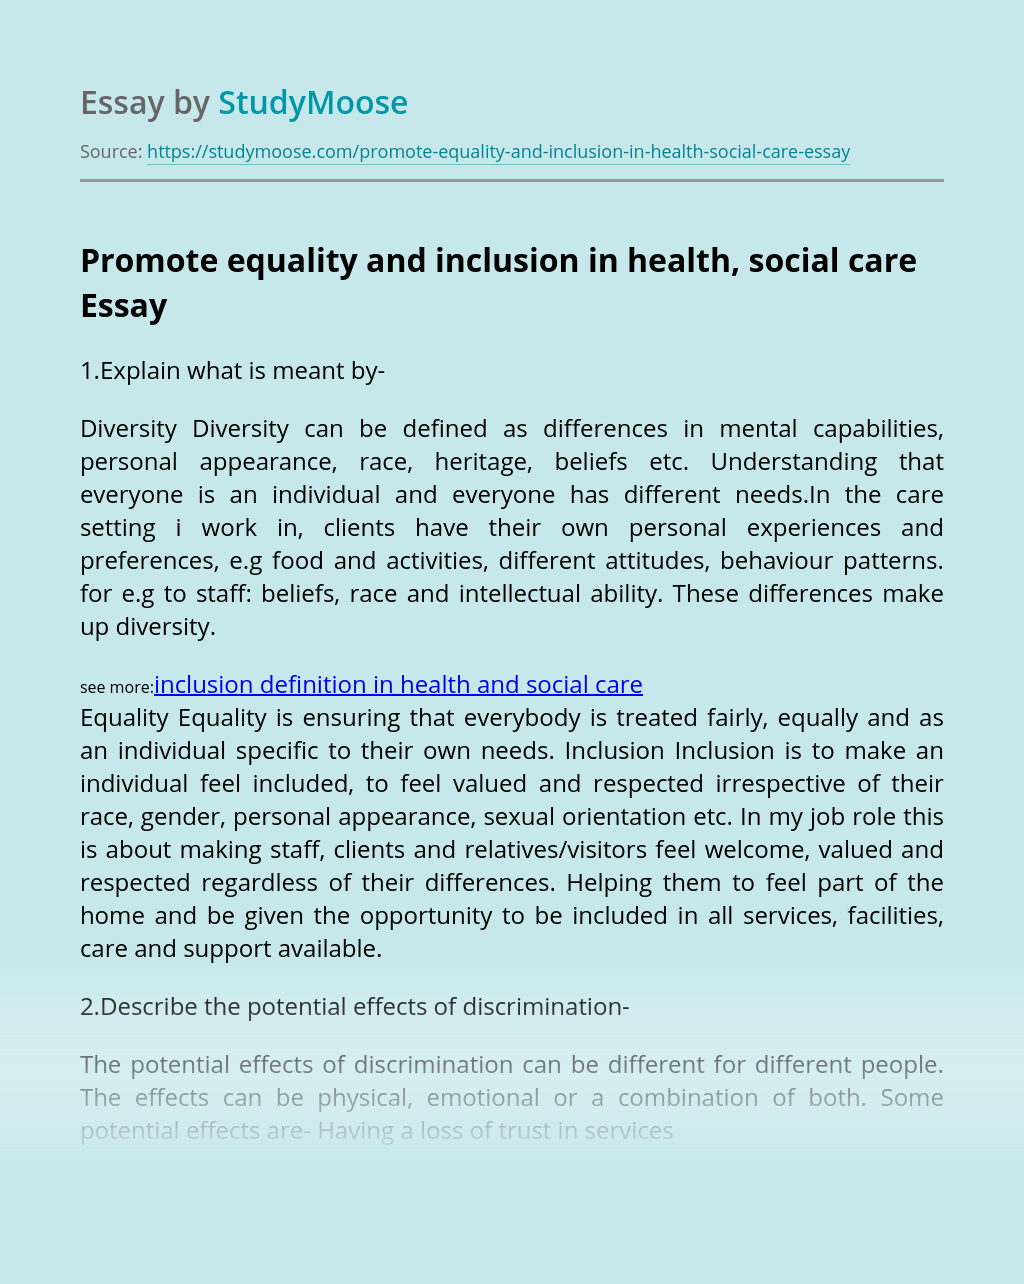 Promote equality and inclusion in health, social care